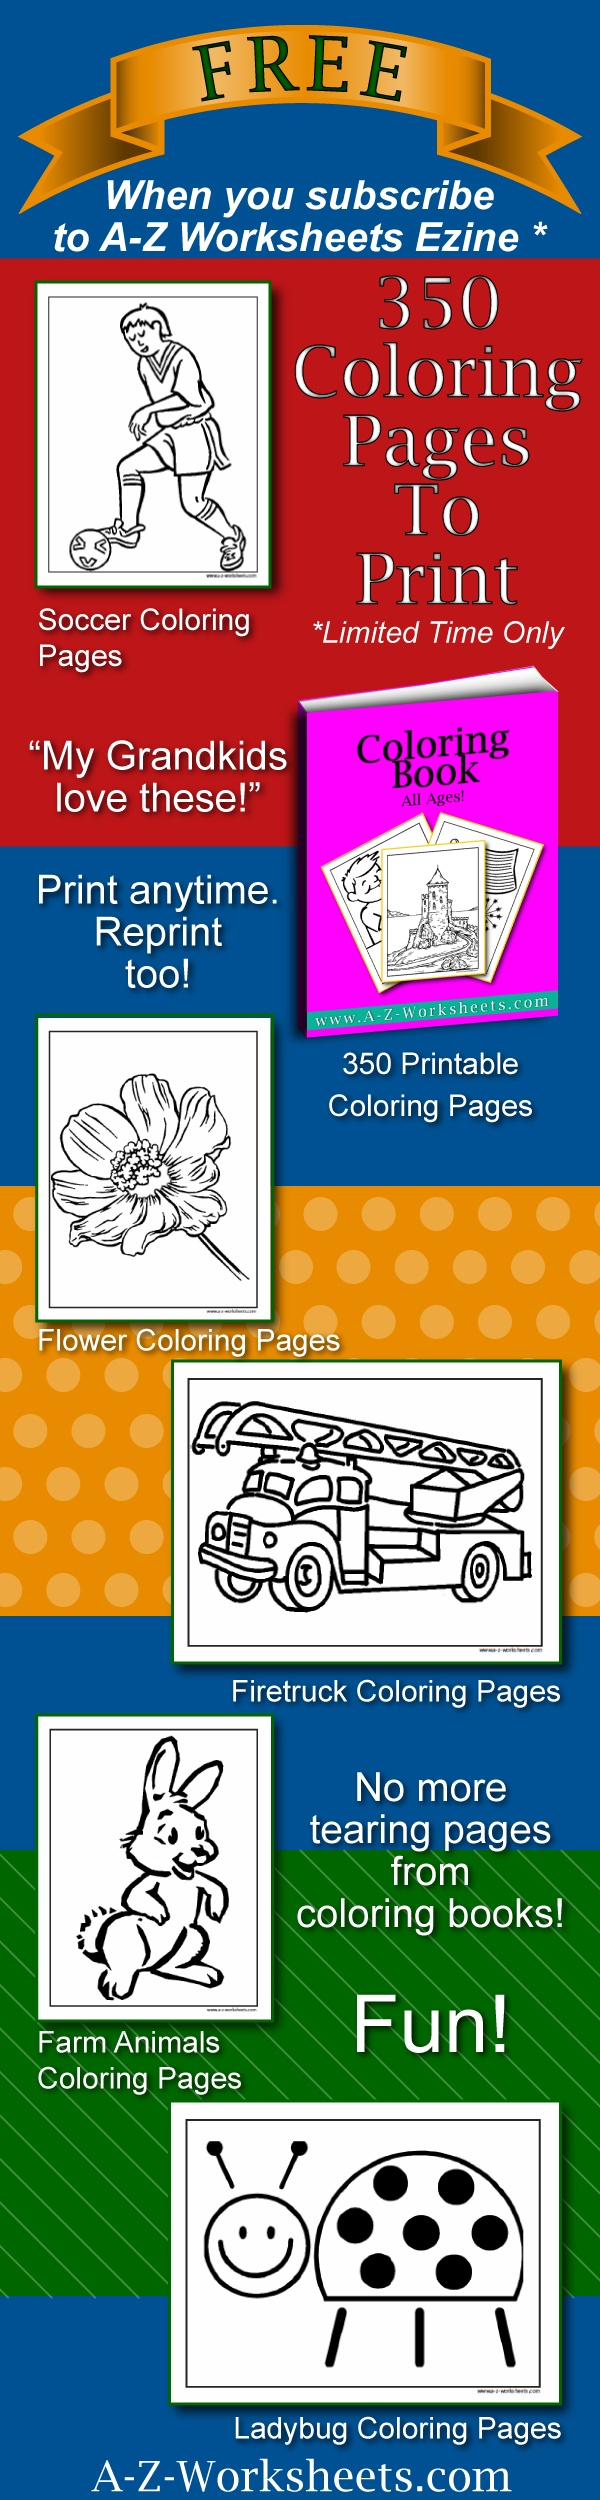 This free bundle of worksheets has lots of great music coloring pages! The whole bundle is free if you sign up for their ezine! It's perfect for both teachers and parents. It's only offered for a limited time so be sure to subscribe now so as not to miss this great opportunity :) You'll love their site. They have thousands of free worksheets for kids!